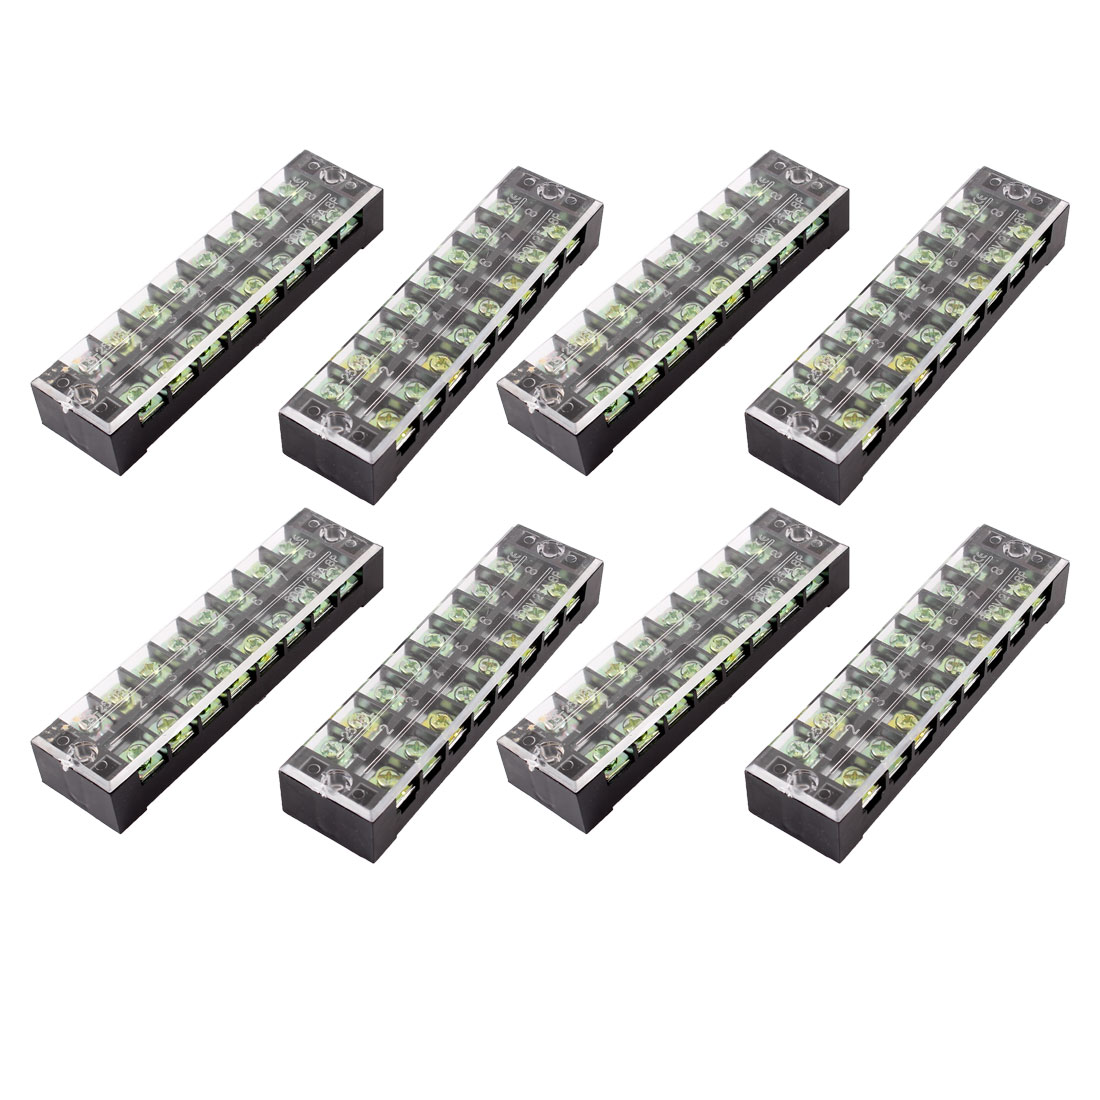 8 Pcs Dual Row 8 Position Screw Terminal Block Strip 600V 25A w Cover